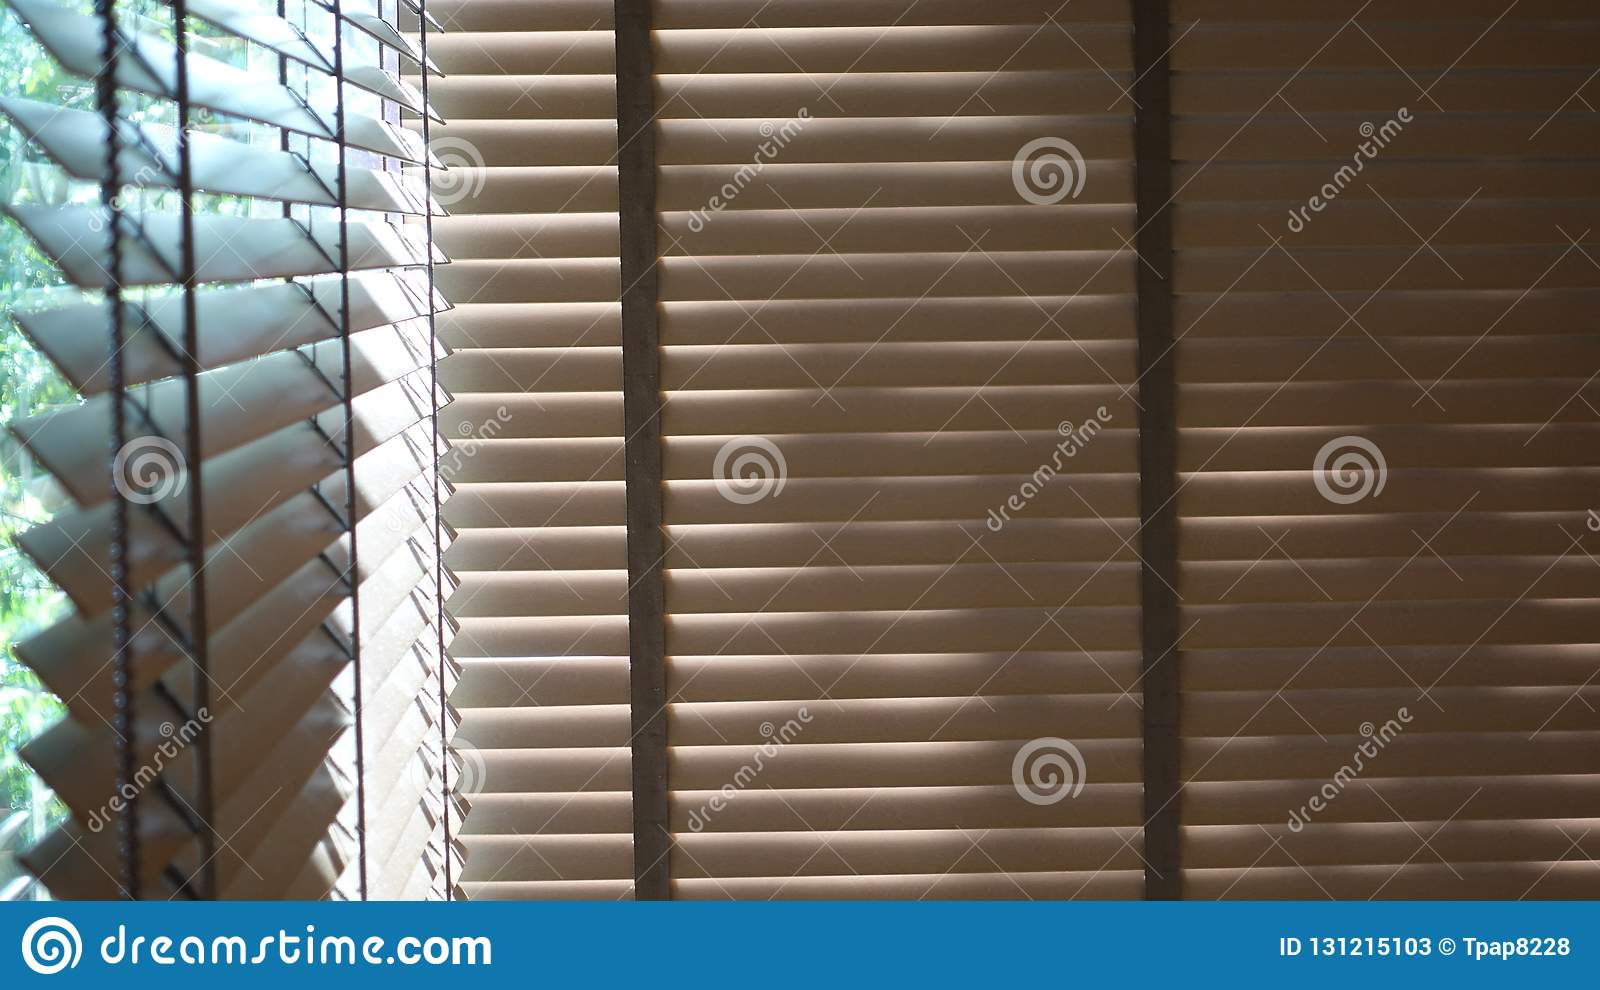 Blinds Evening Sun Light Outside Window Blinds Sunshine And Shadow On Window Blind Decorative Interior In Home Stock Image Image Of Closeup Interior 131215103